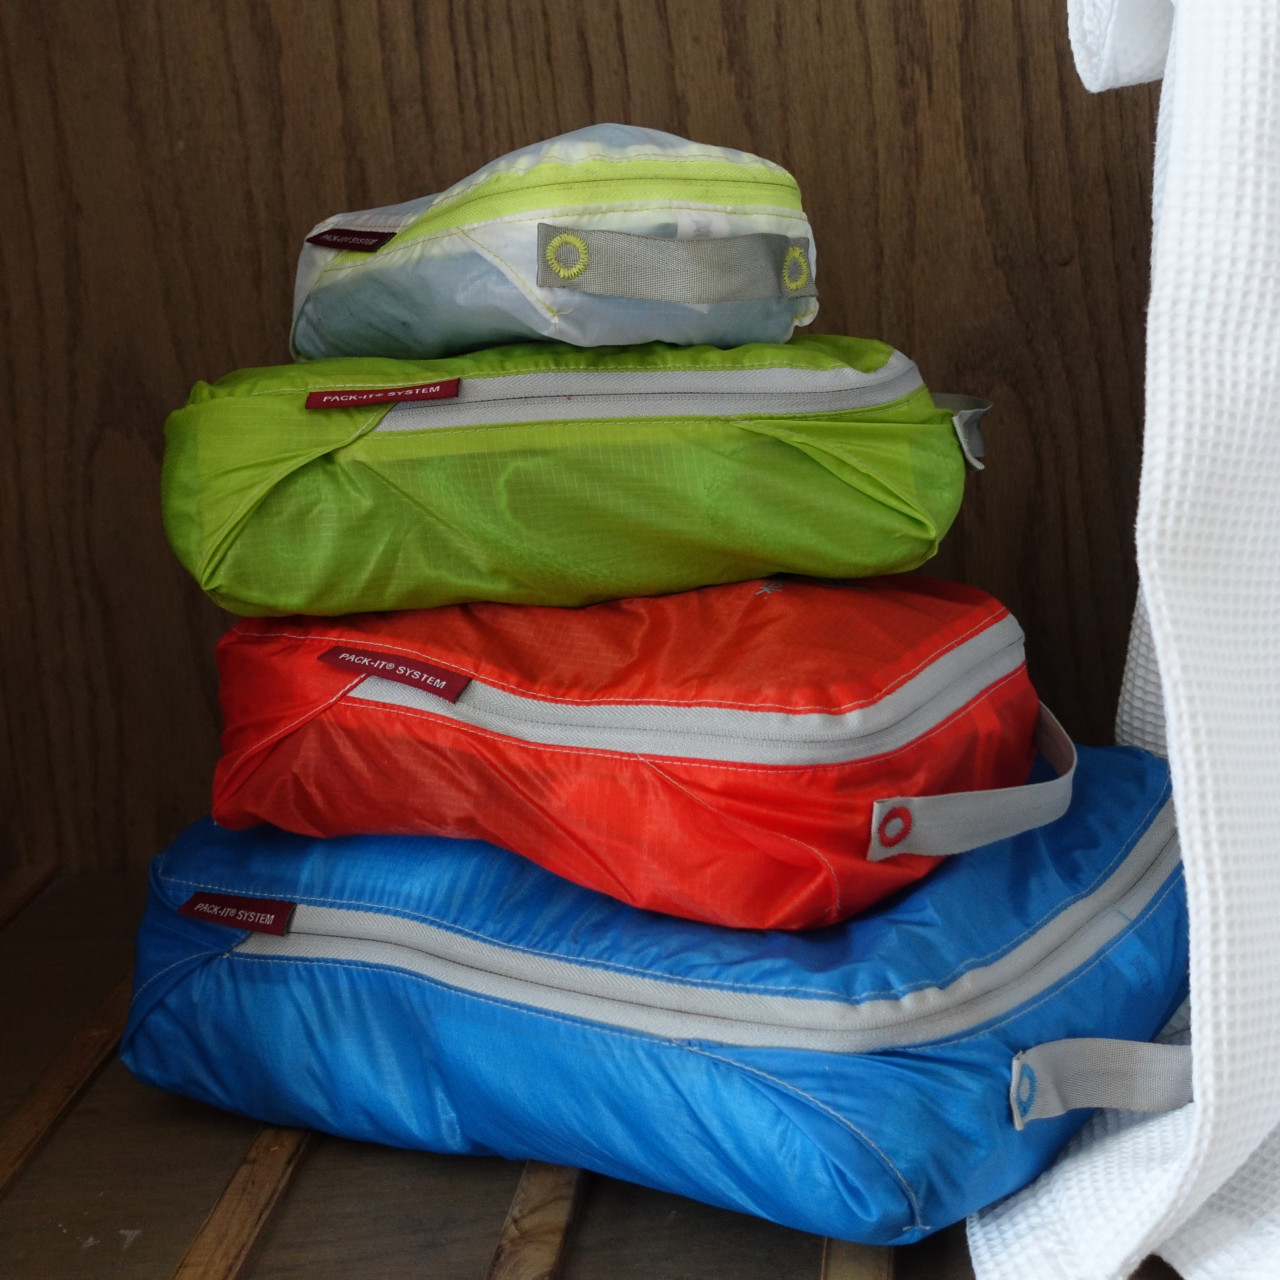 Eagle creek packing cubes set